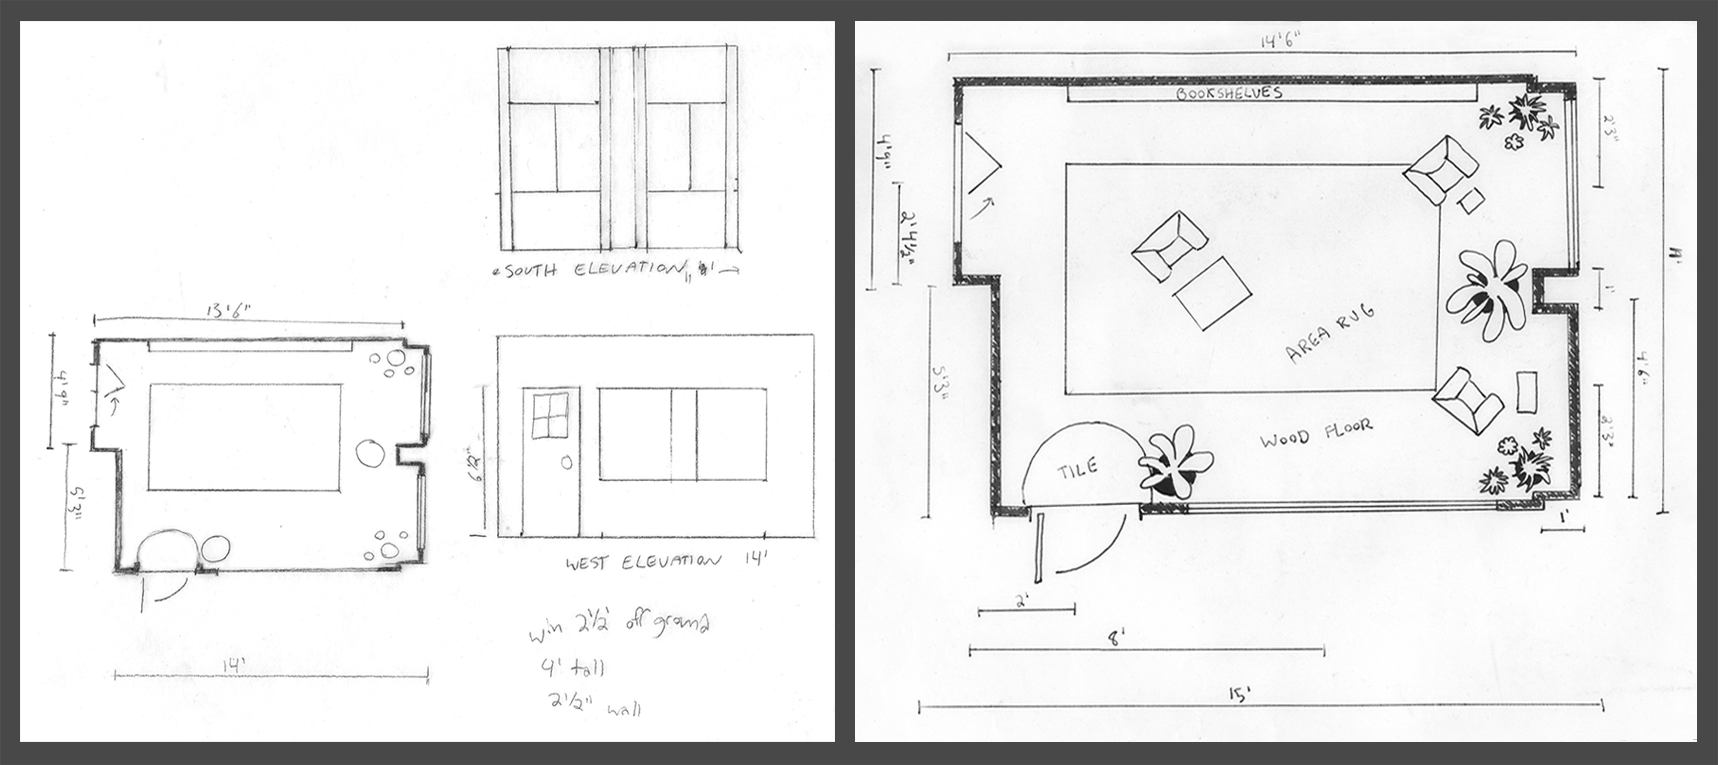 Elevation and floor plan drawings, graphite on vellum.